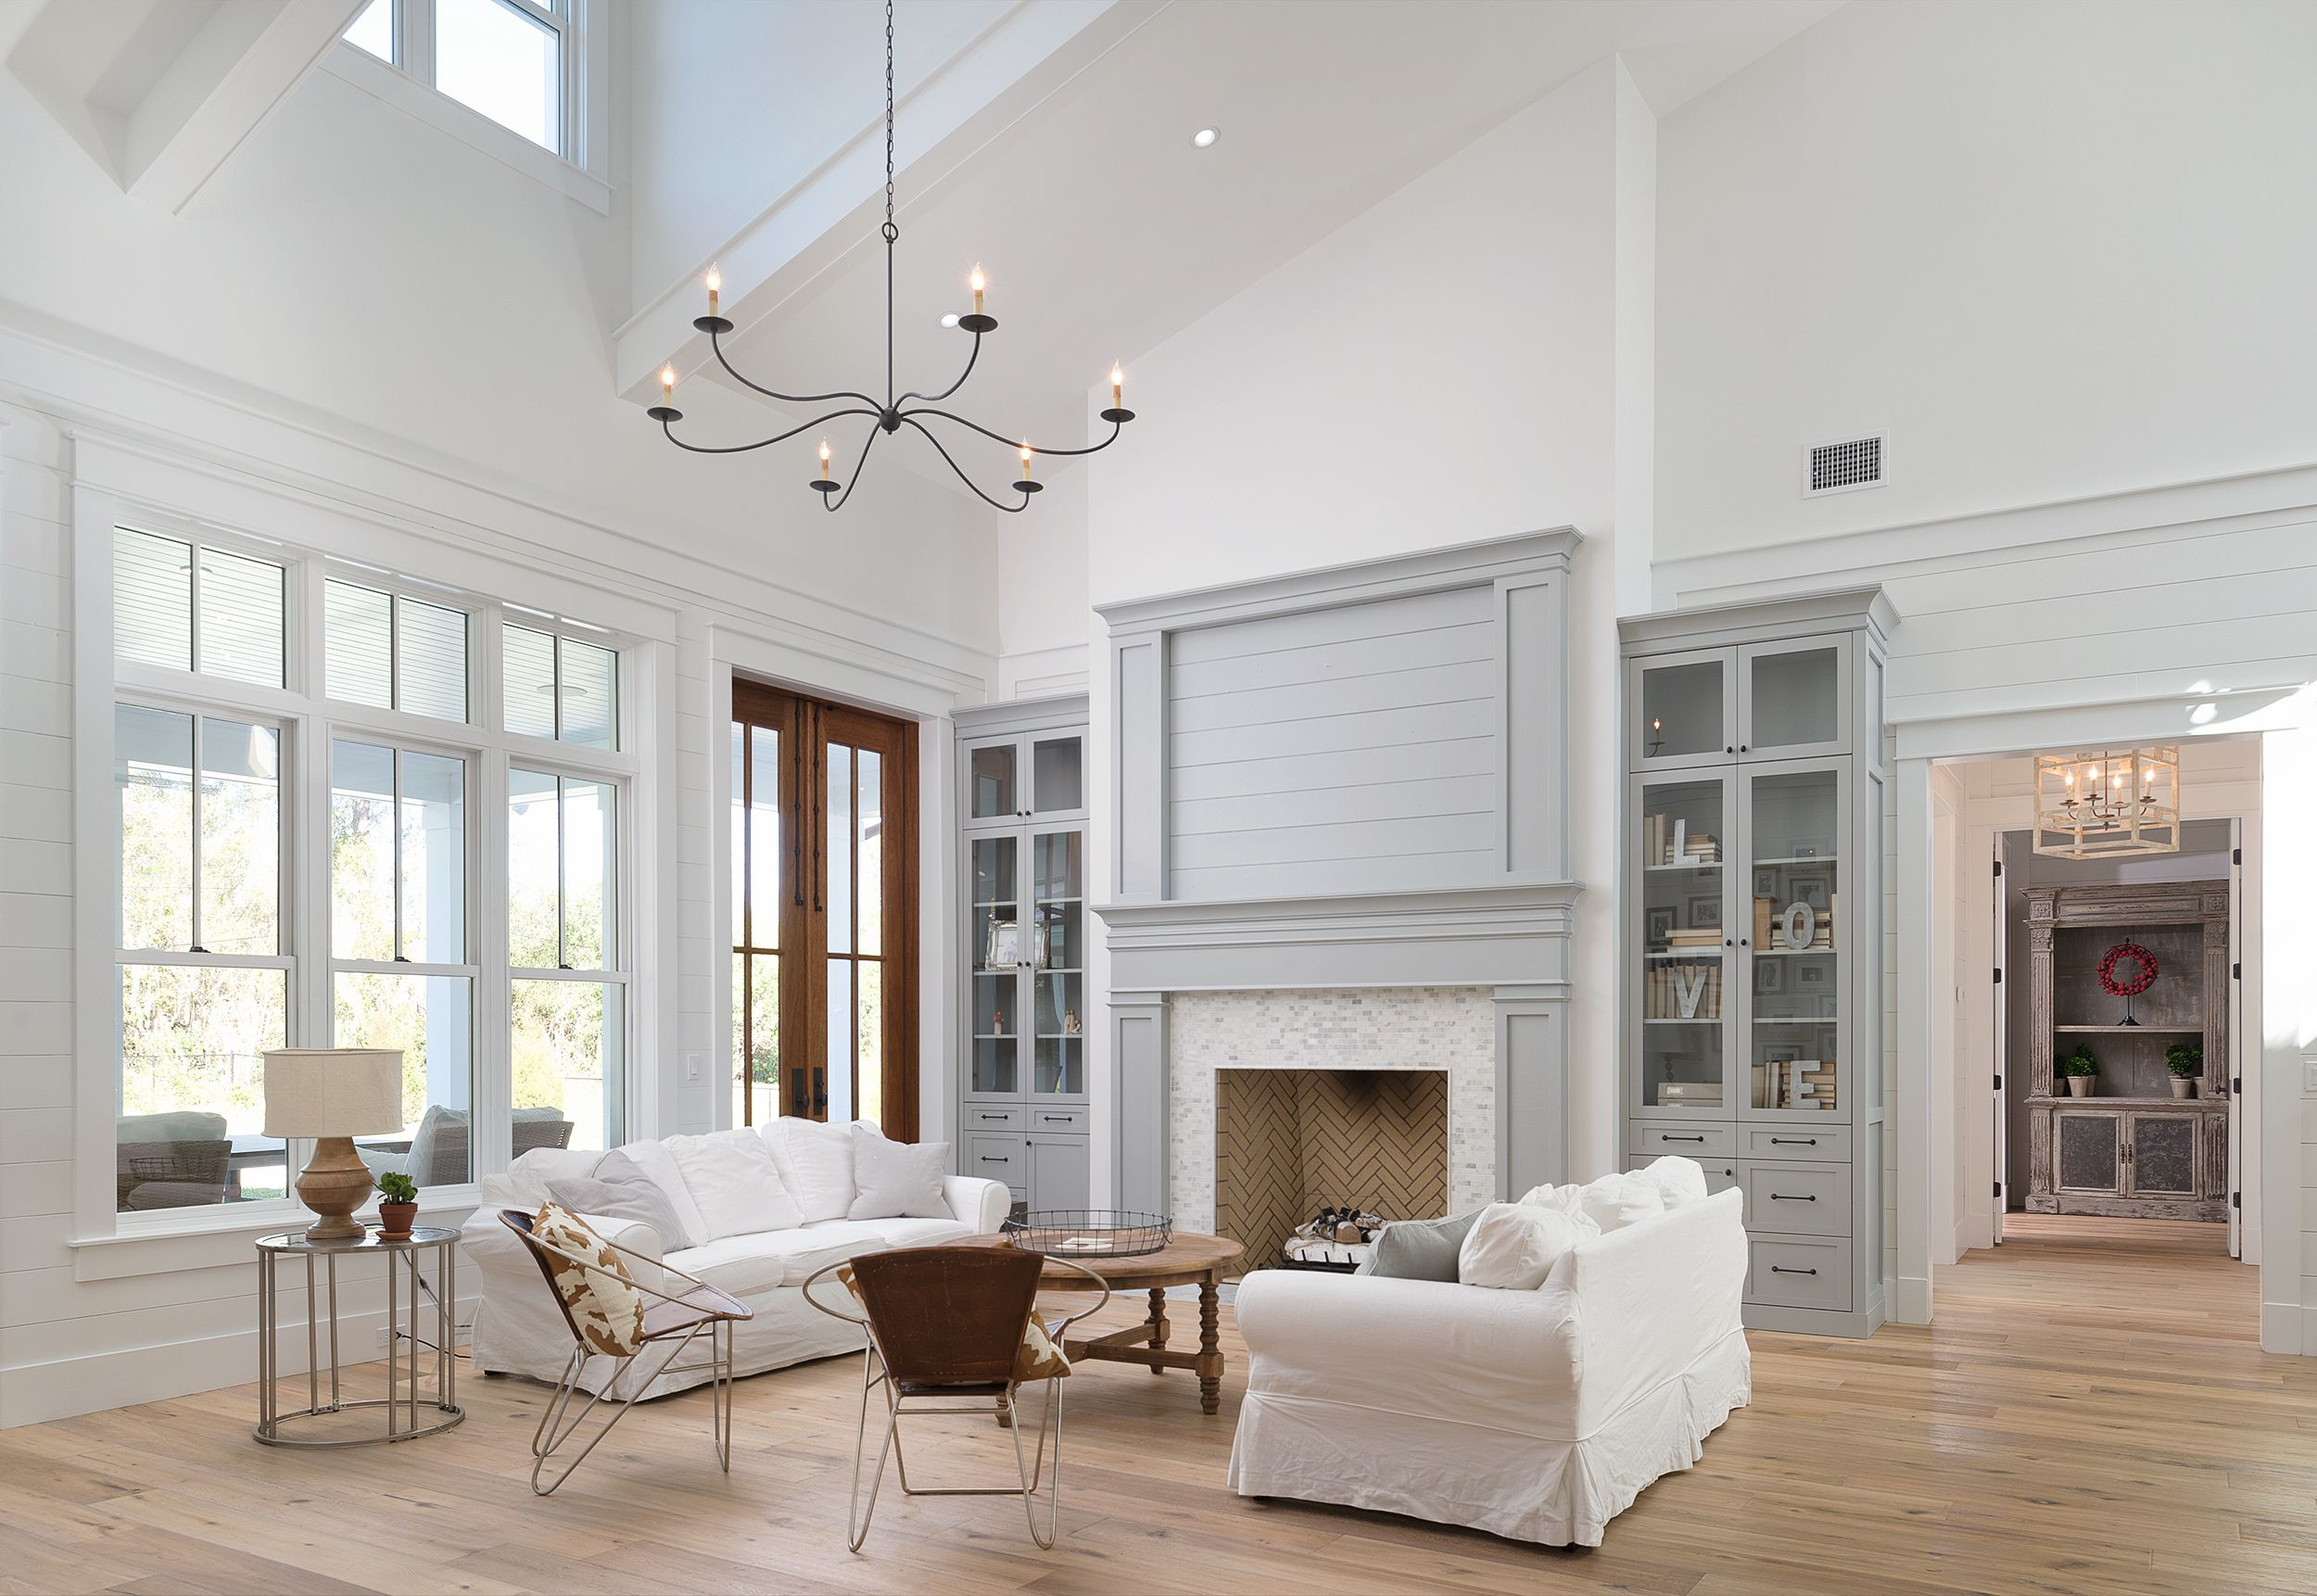 Jargon 101 Typically Nickel Gap Is A Shiplap Pattern For